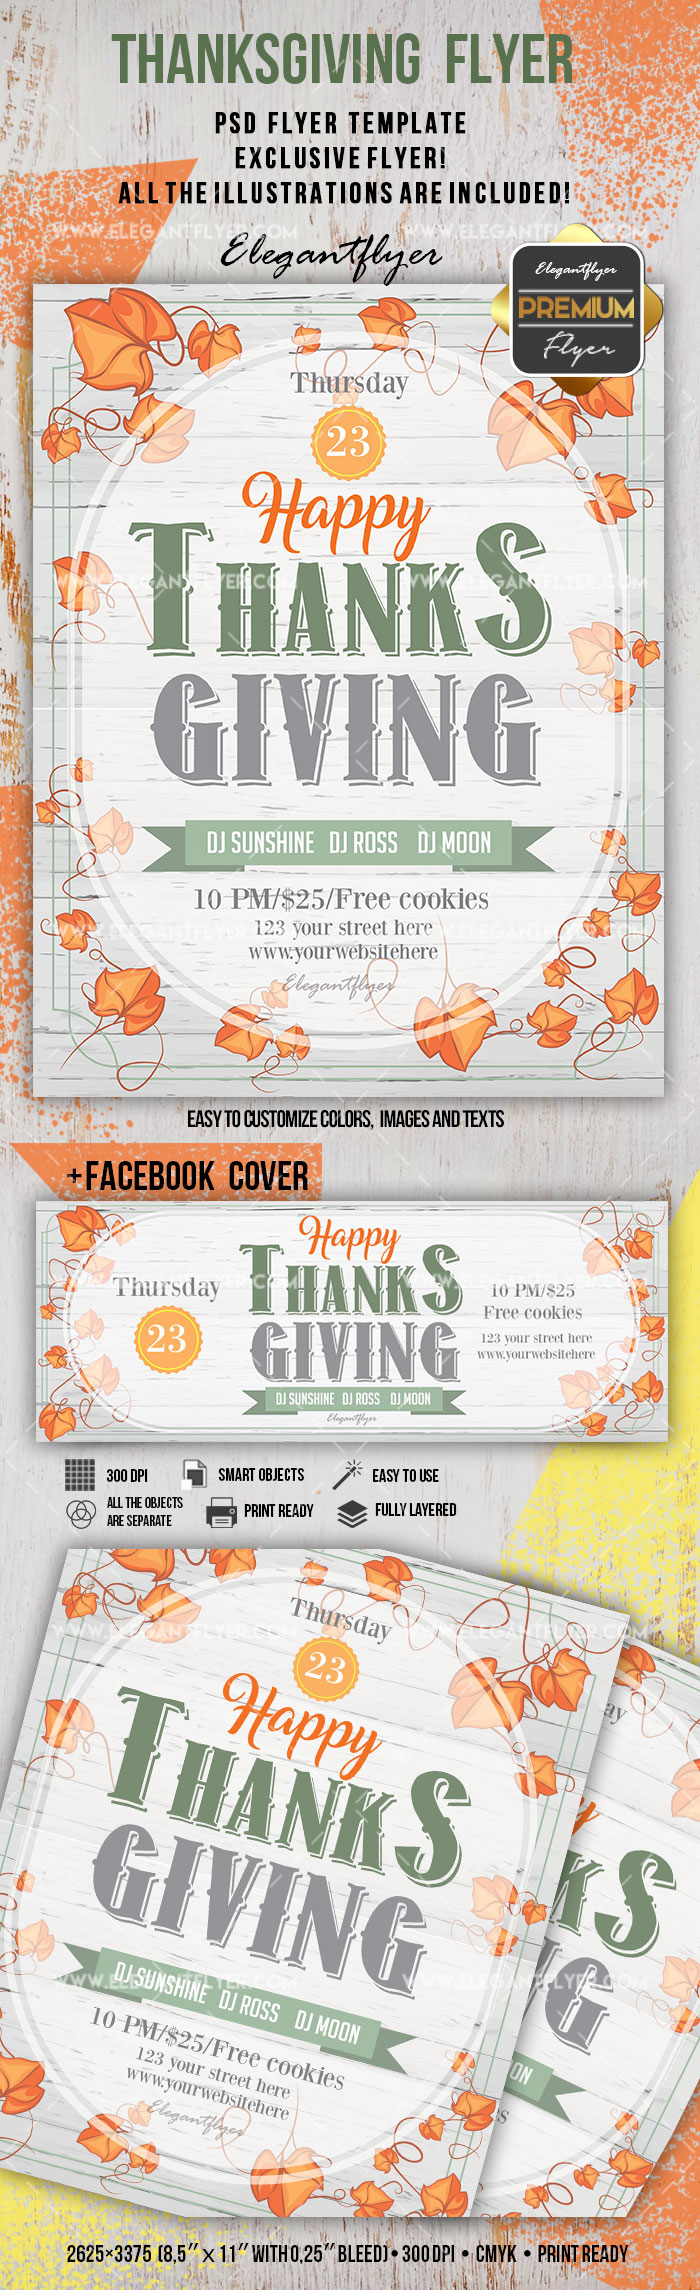 Template for Thanksgiving Tree Leaves